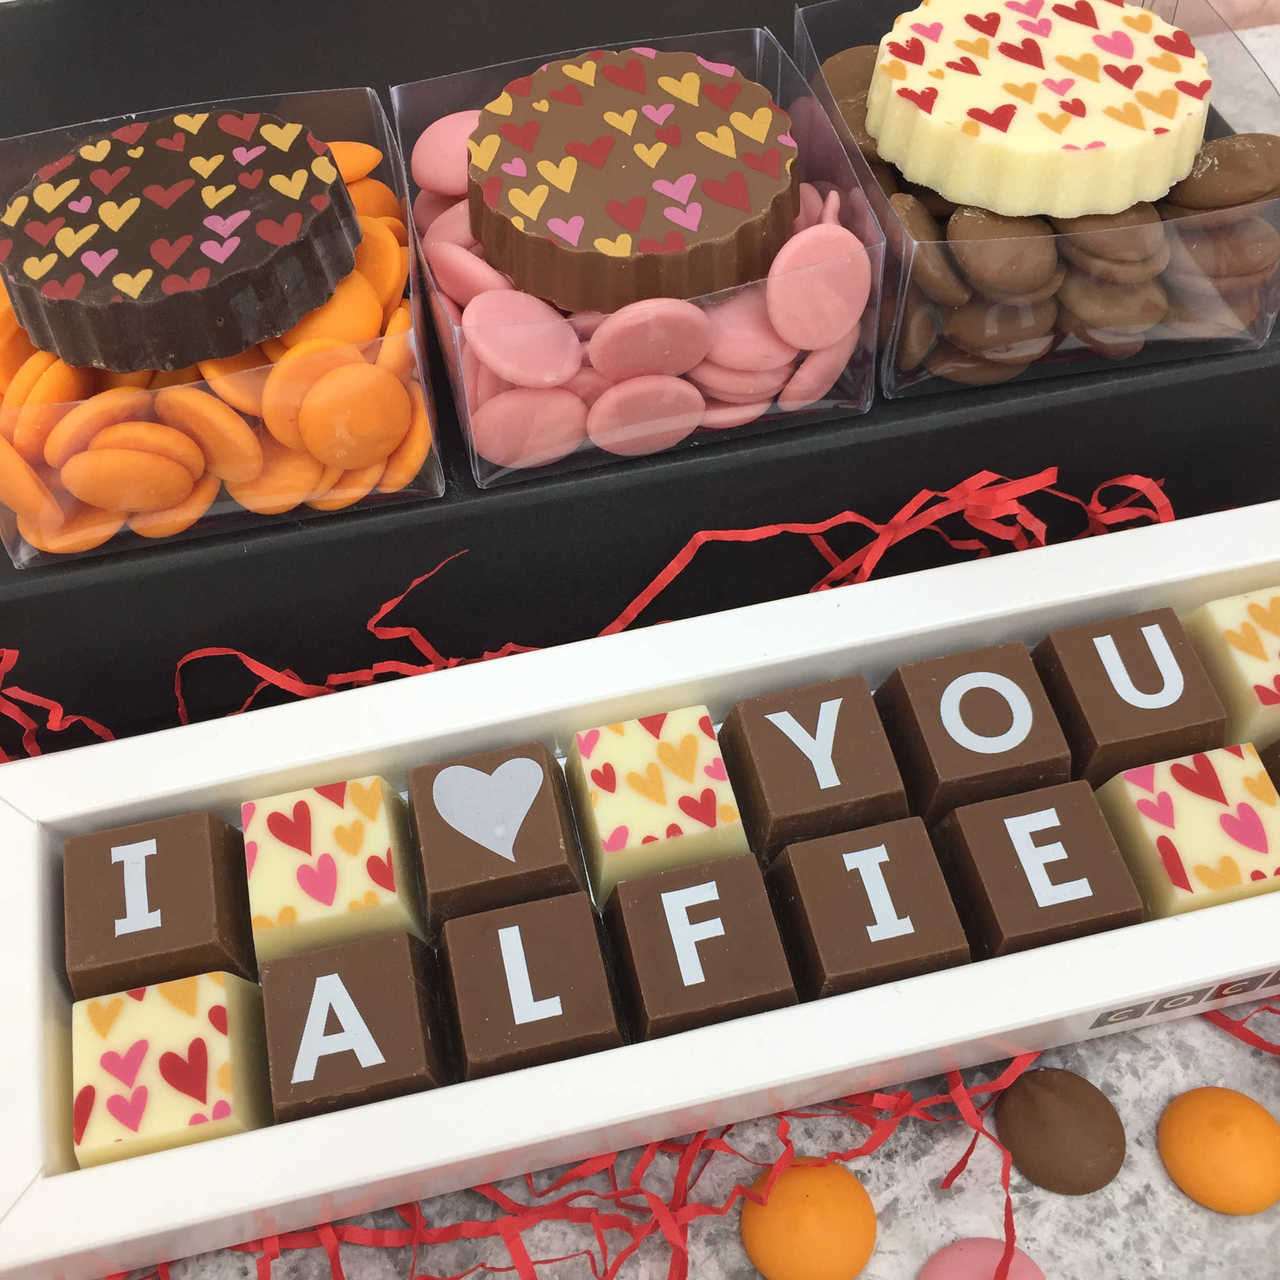 99218a5afd01b Personalised Gift Box of Chocolates with I love you message